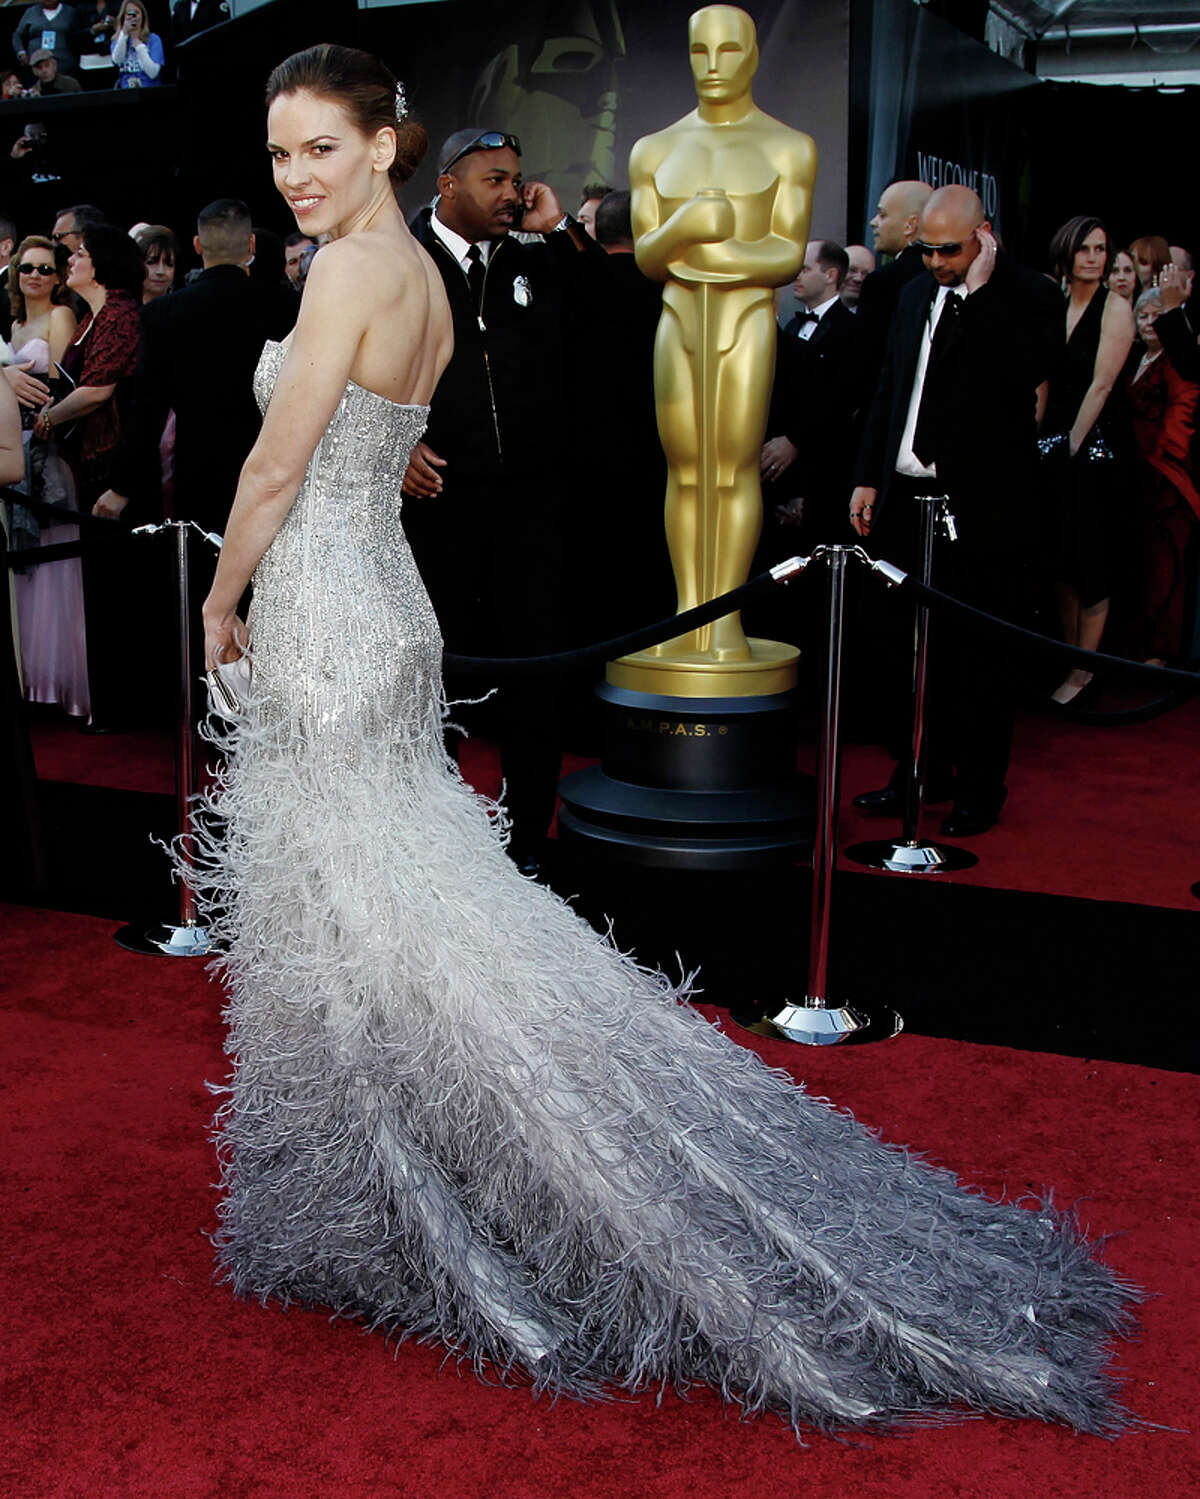 Hilary Swank, we knew Ginger Rogers, and you're no Ginger Rogers. Commentary by the Houston Chronicle's Kyrie O'Connor of the MeMo blog. Photo by the Associated Press.